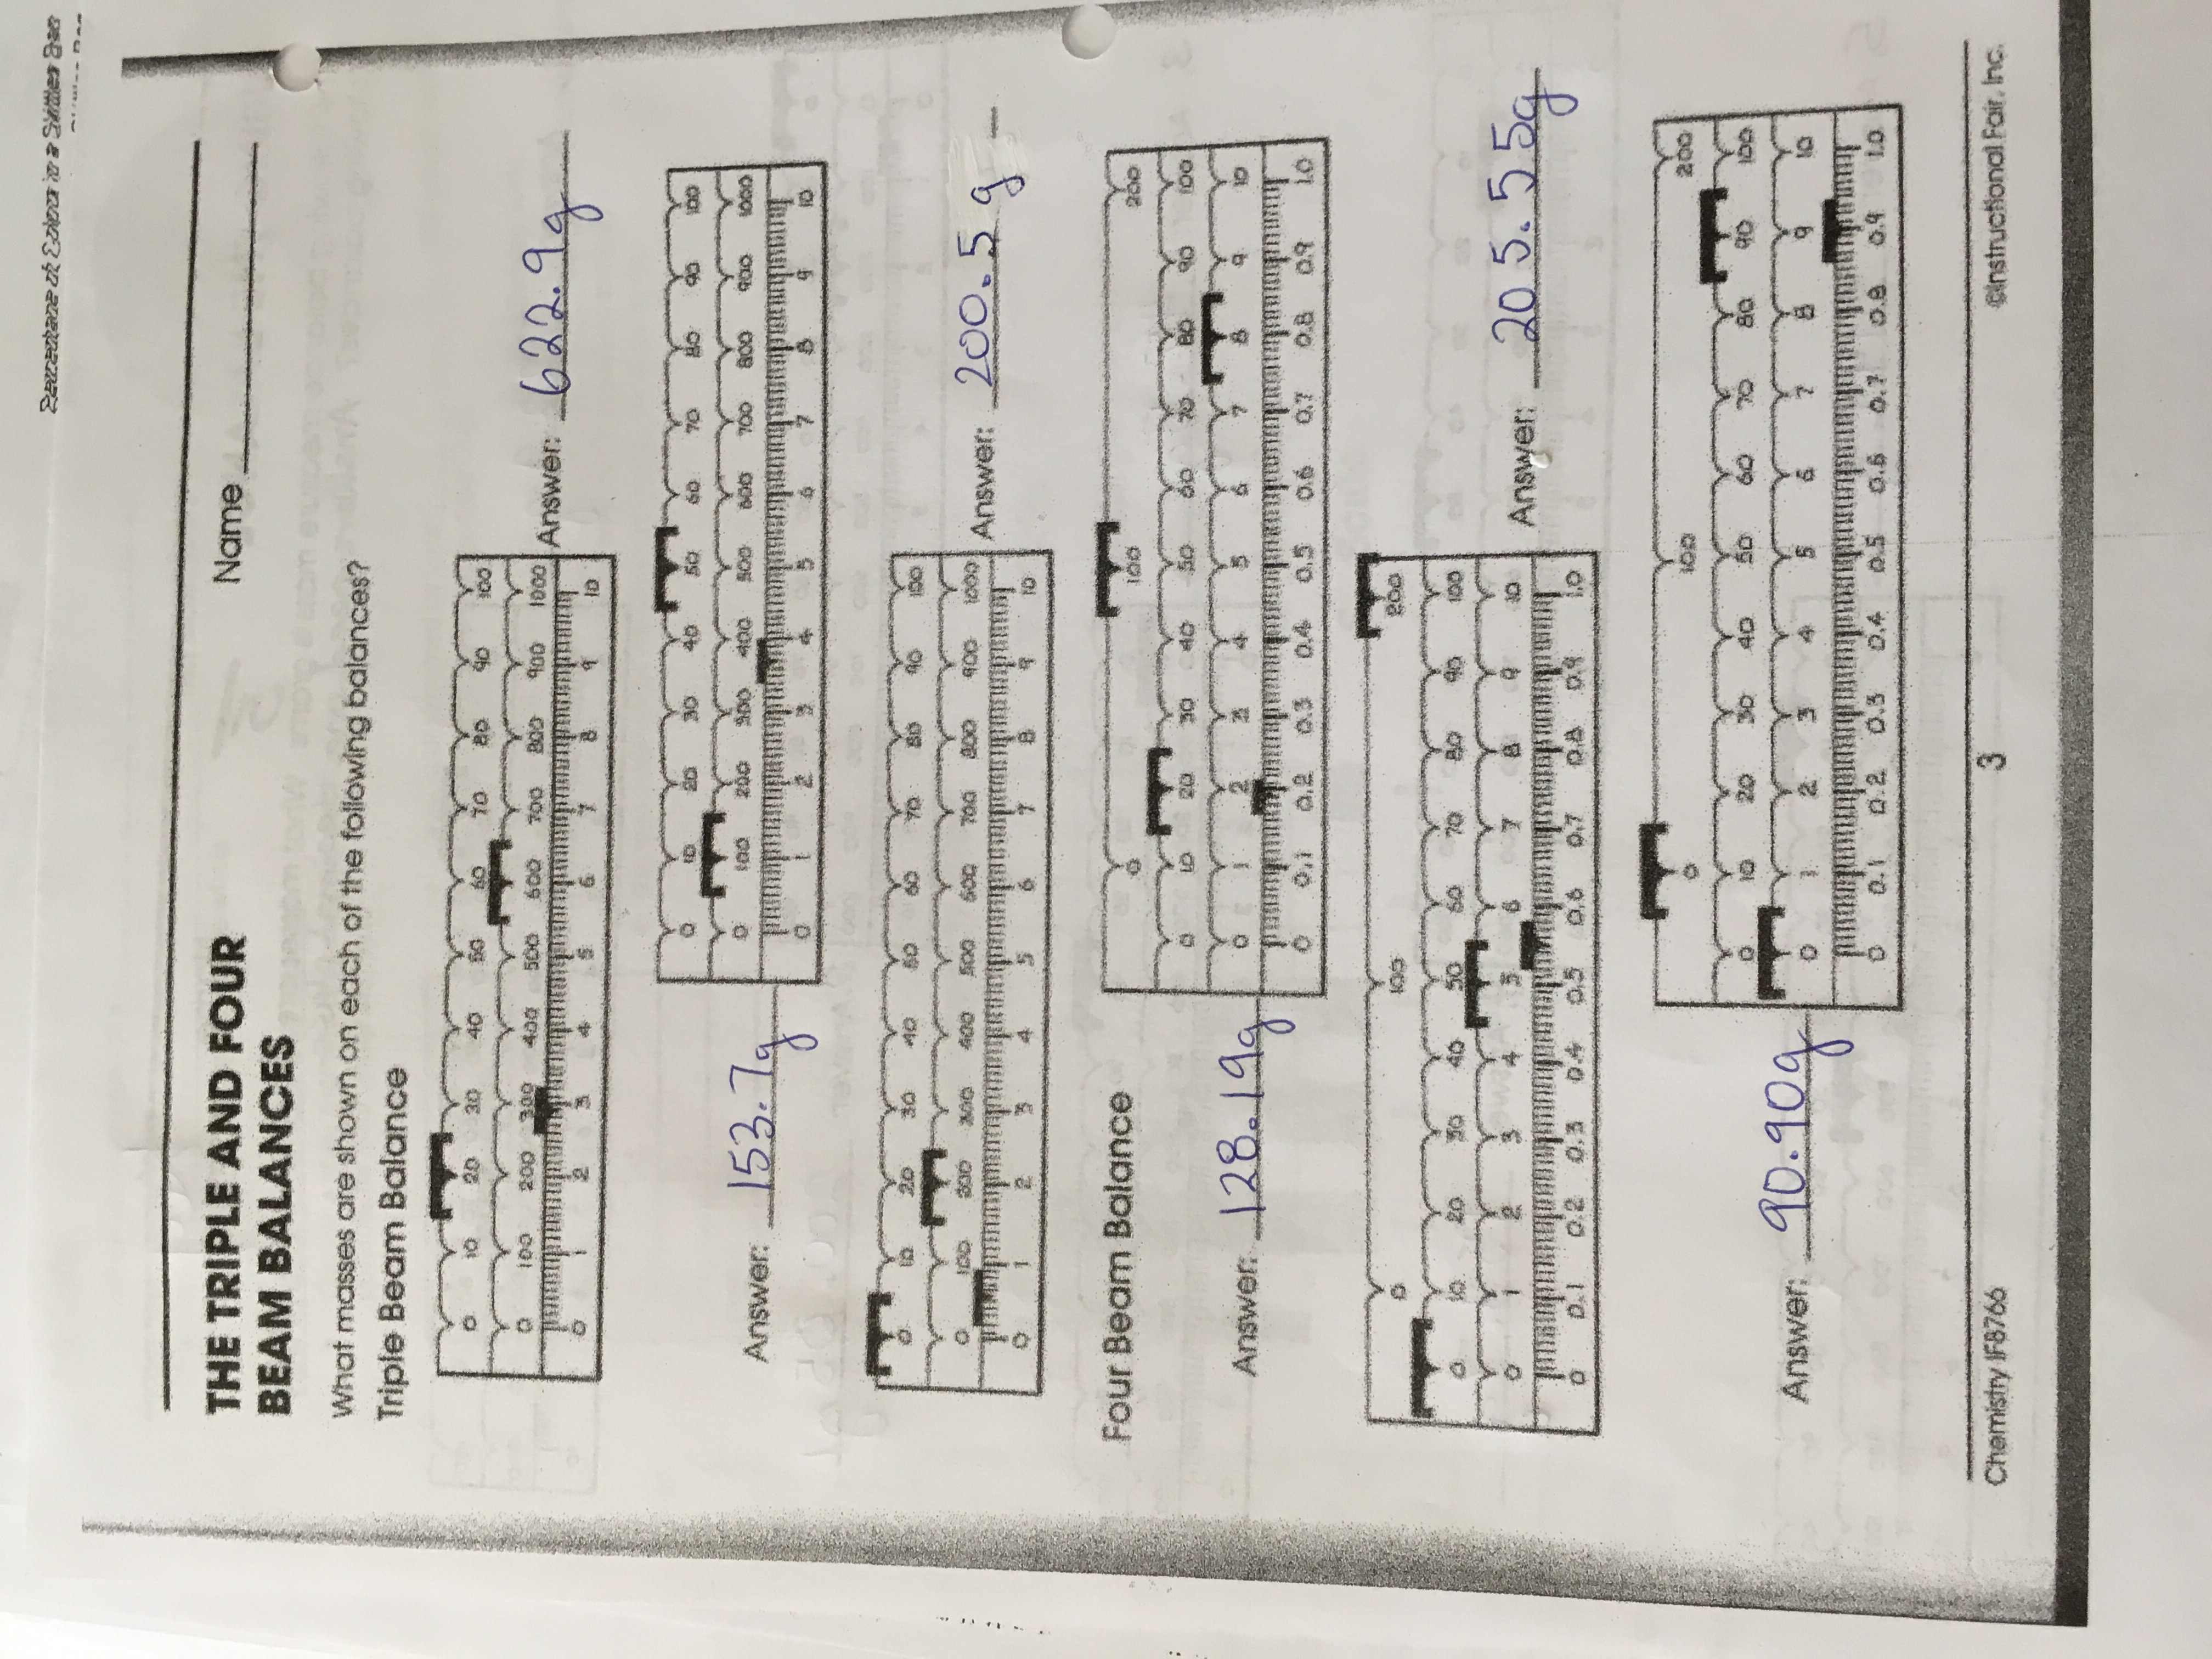 Science 8 Answer Keys